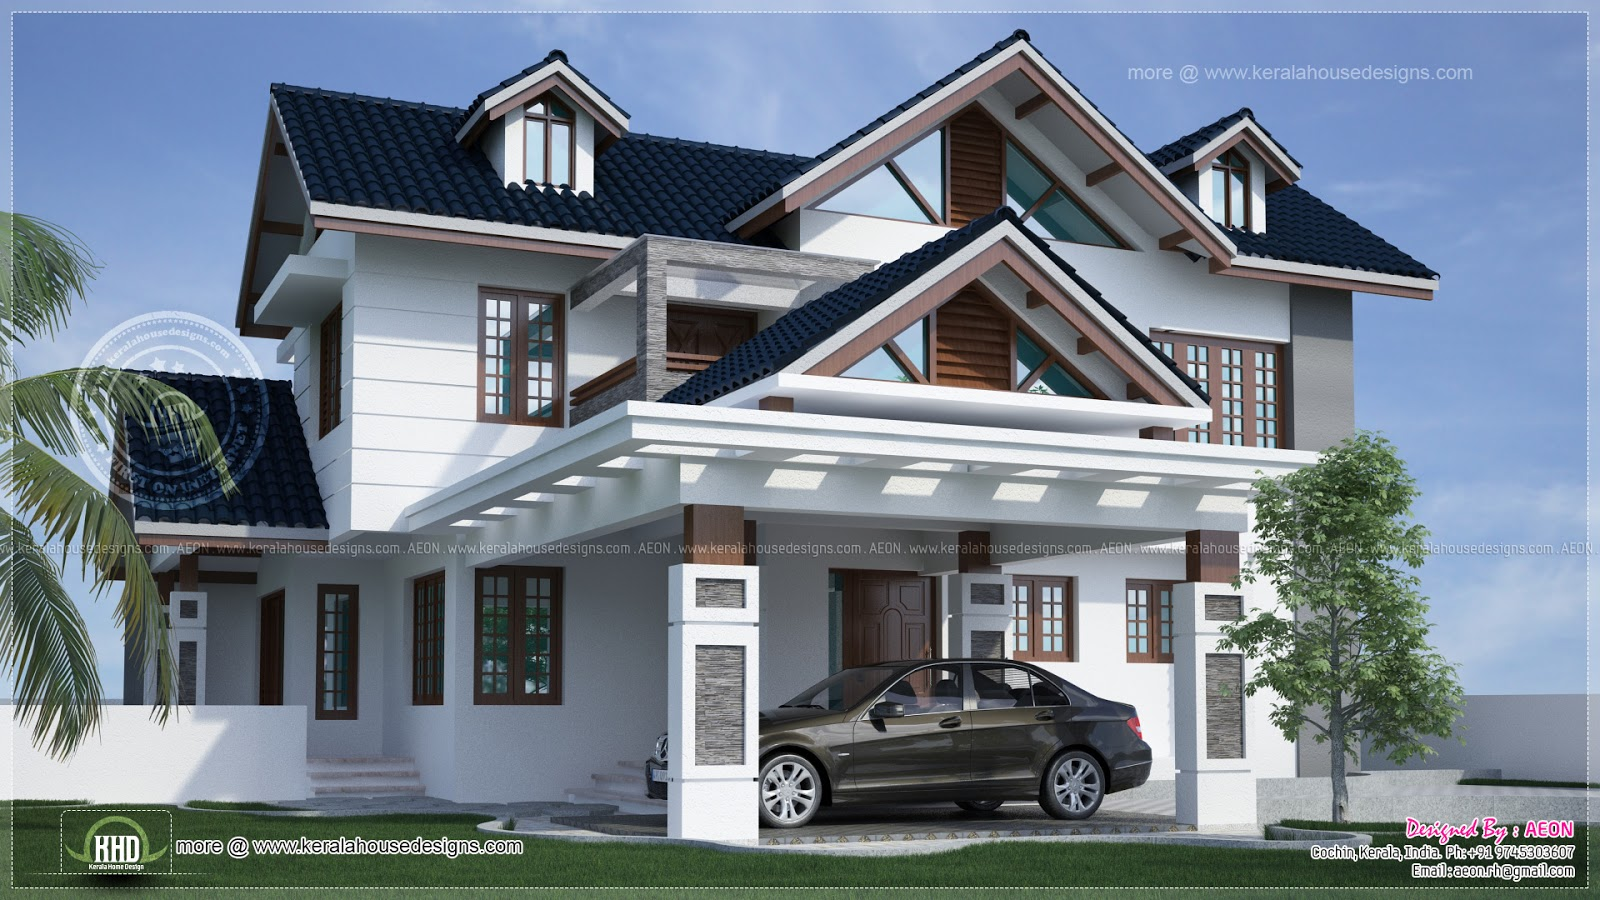 Kerala House Front Elevation Models : River side kerala style residence exterior design